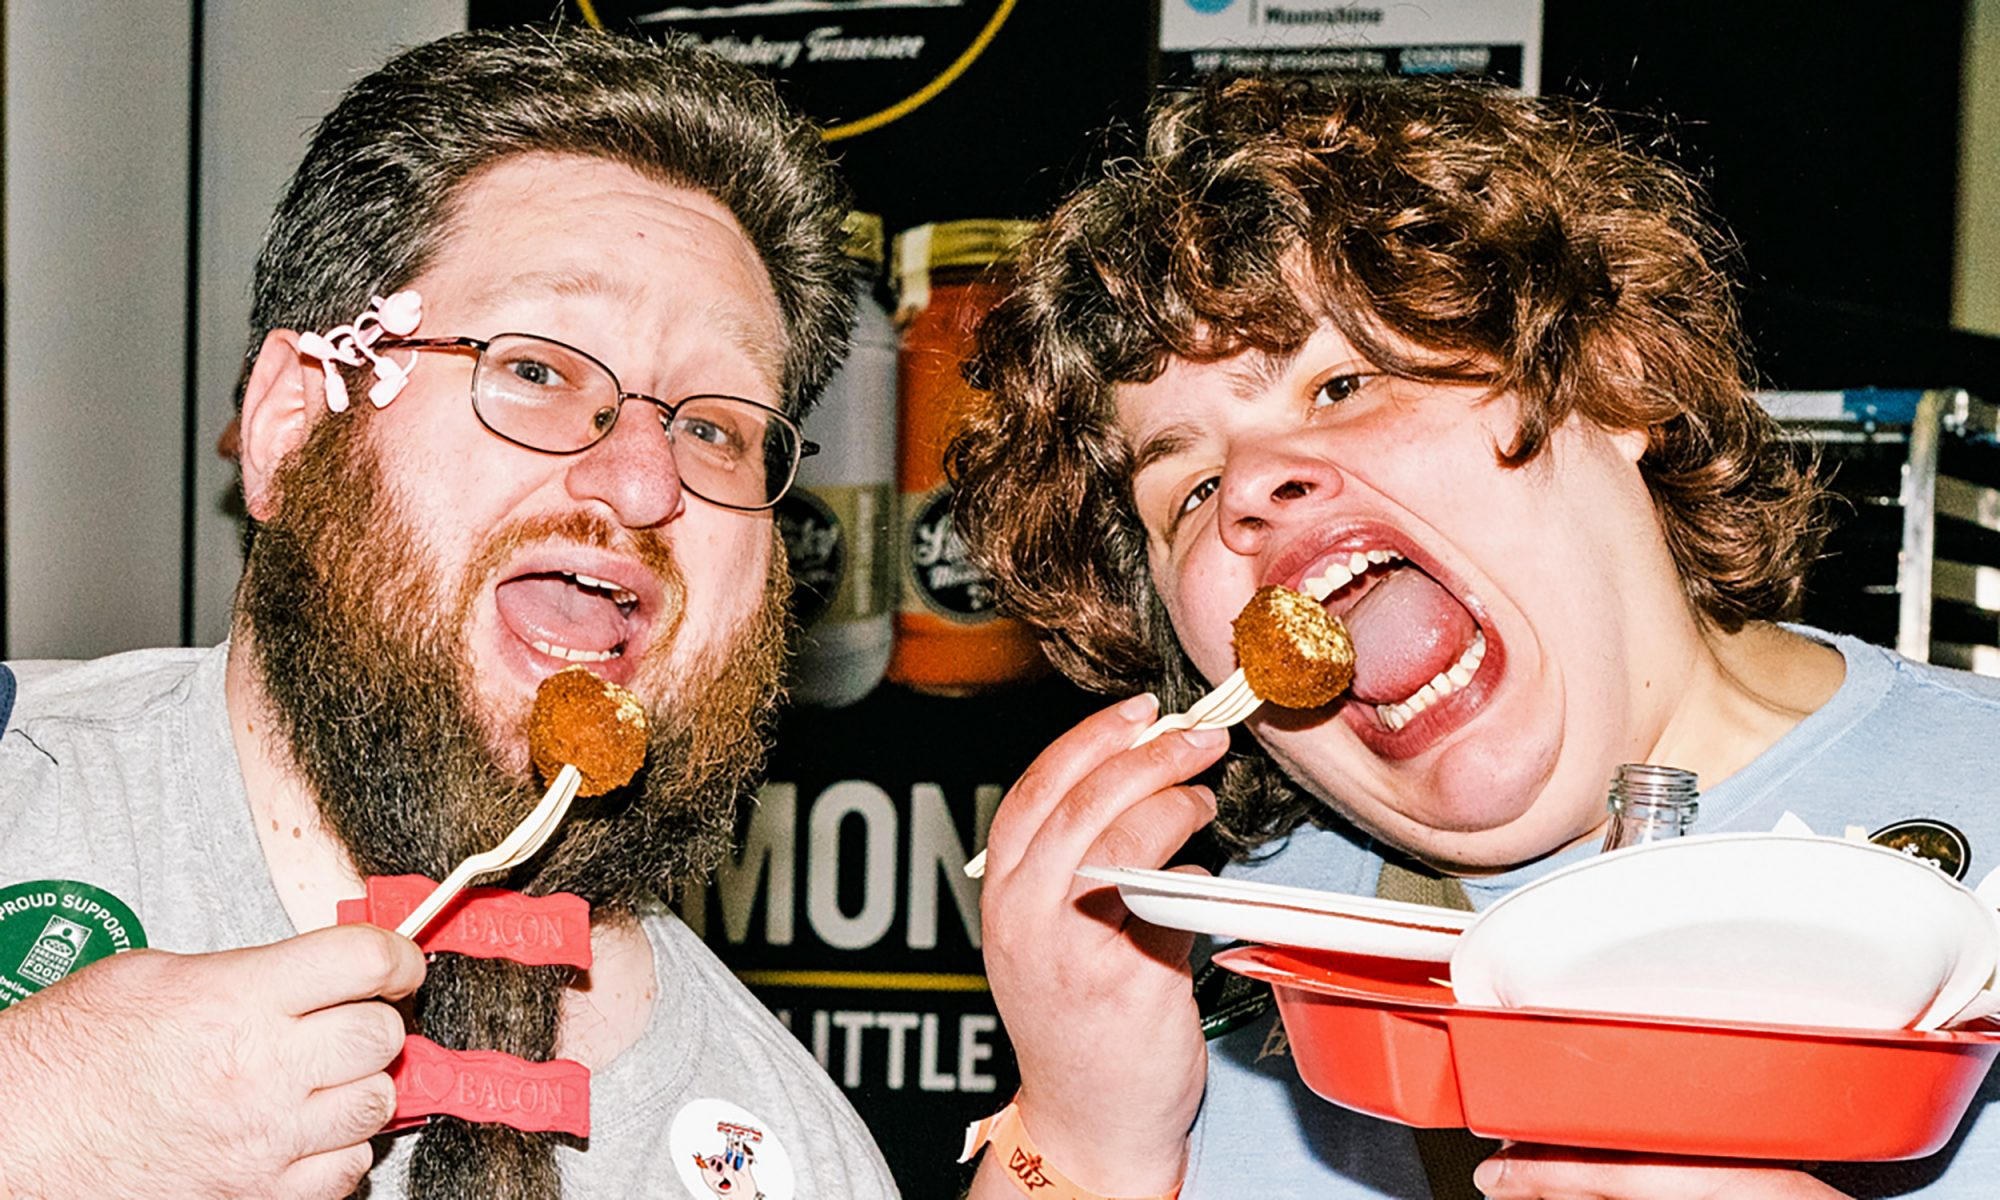 EC: American Meat: Decadence and Divisiveness at Baconfest Chicago